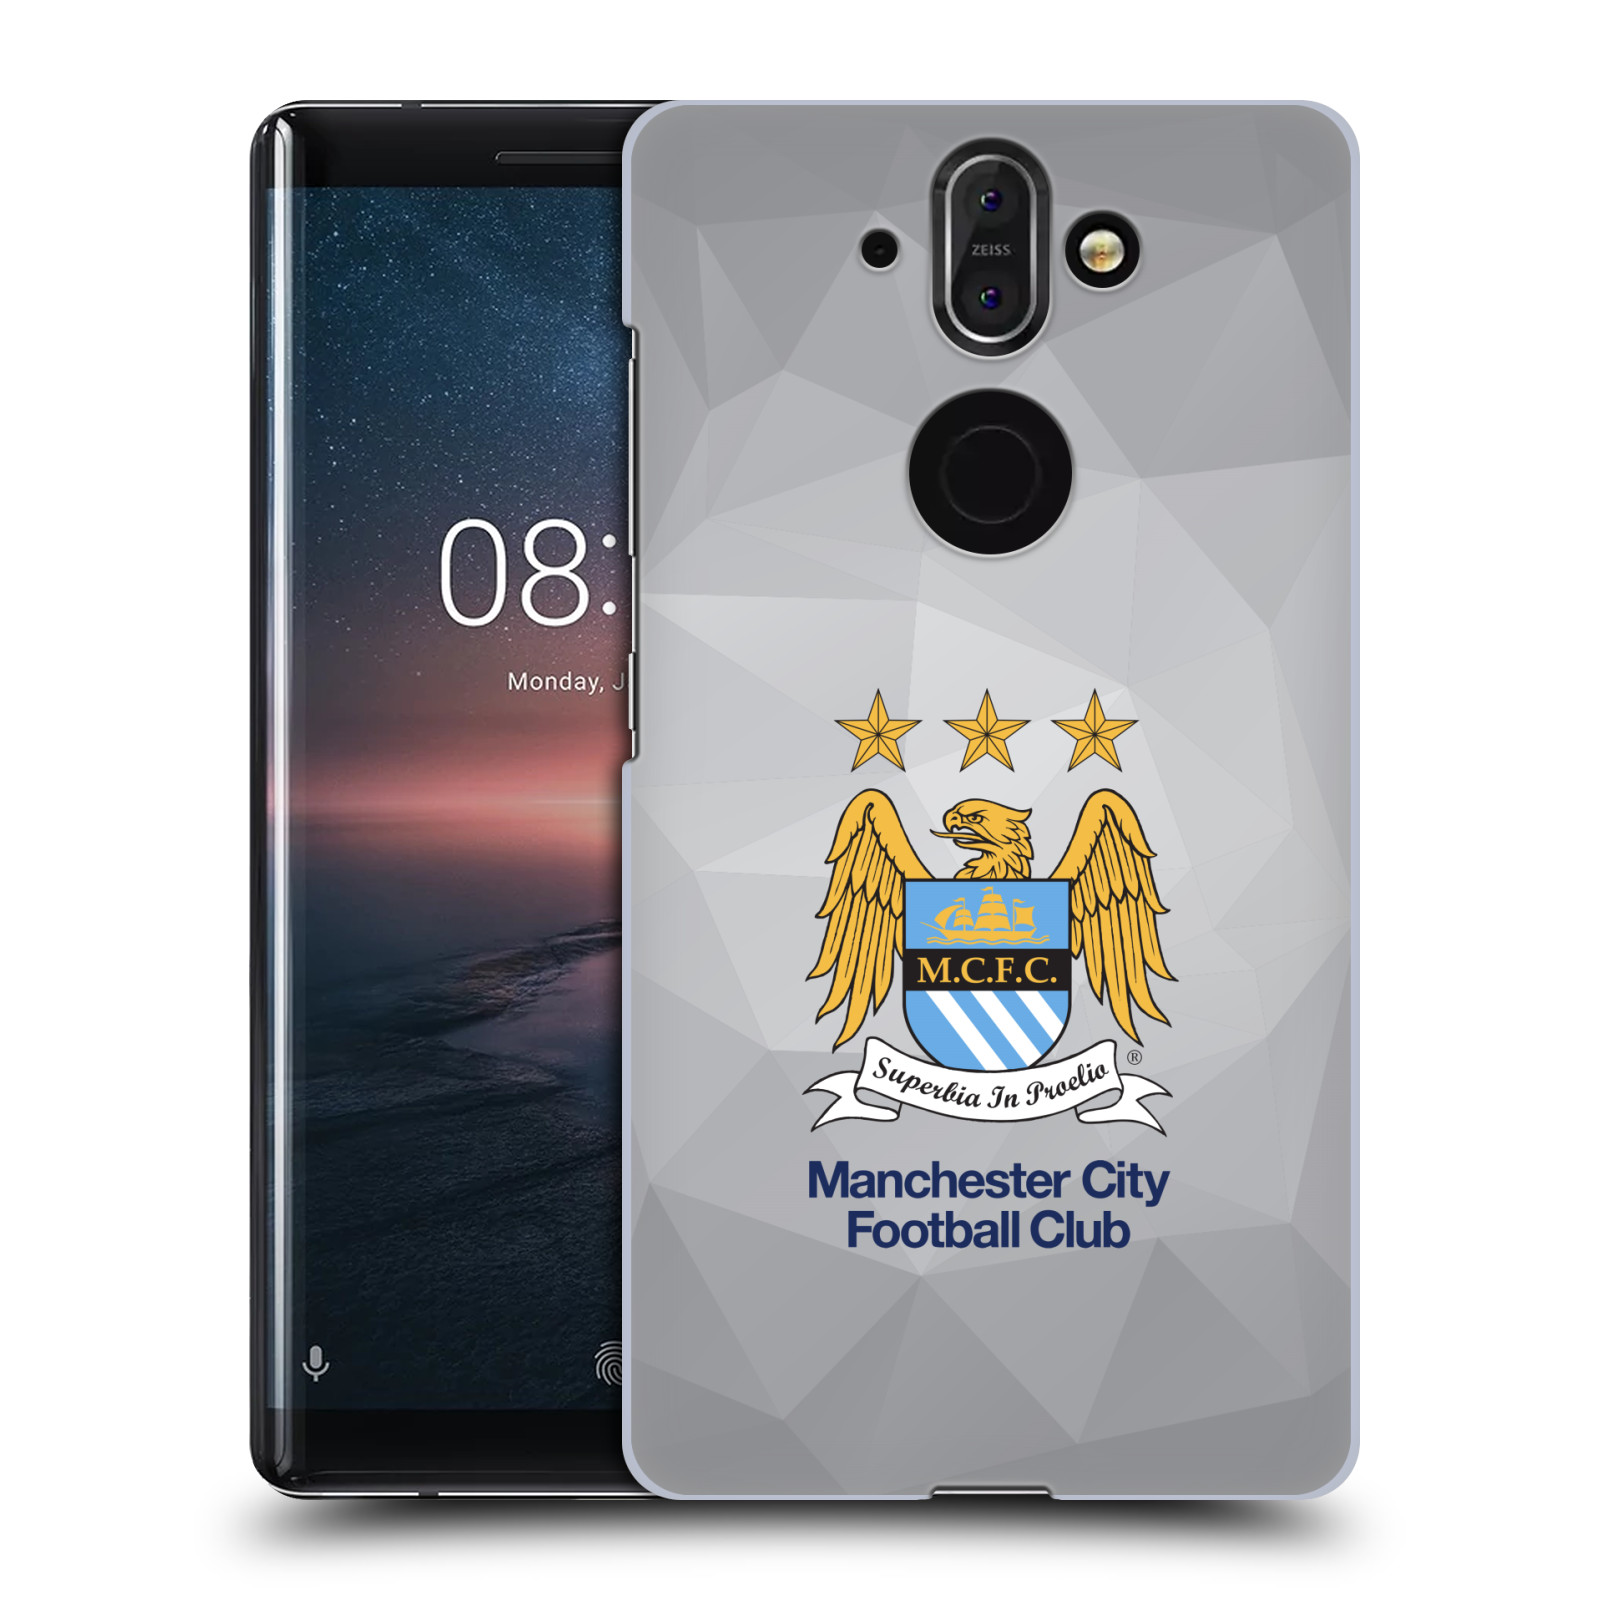 Plastové pouzdro na mobil Nokia 8 Sirocco - Head Case - Manchester City FC - Football Club